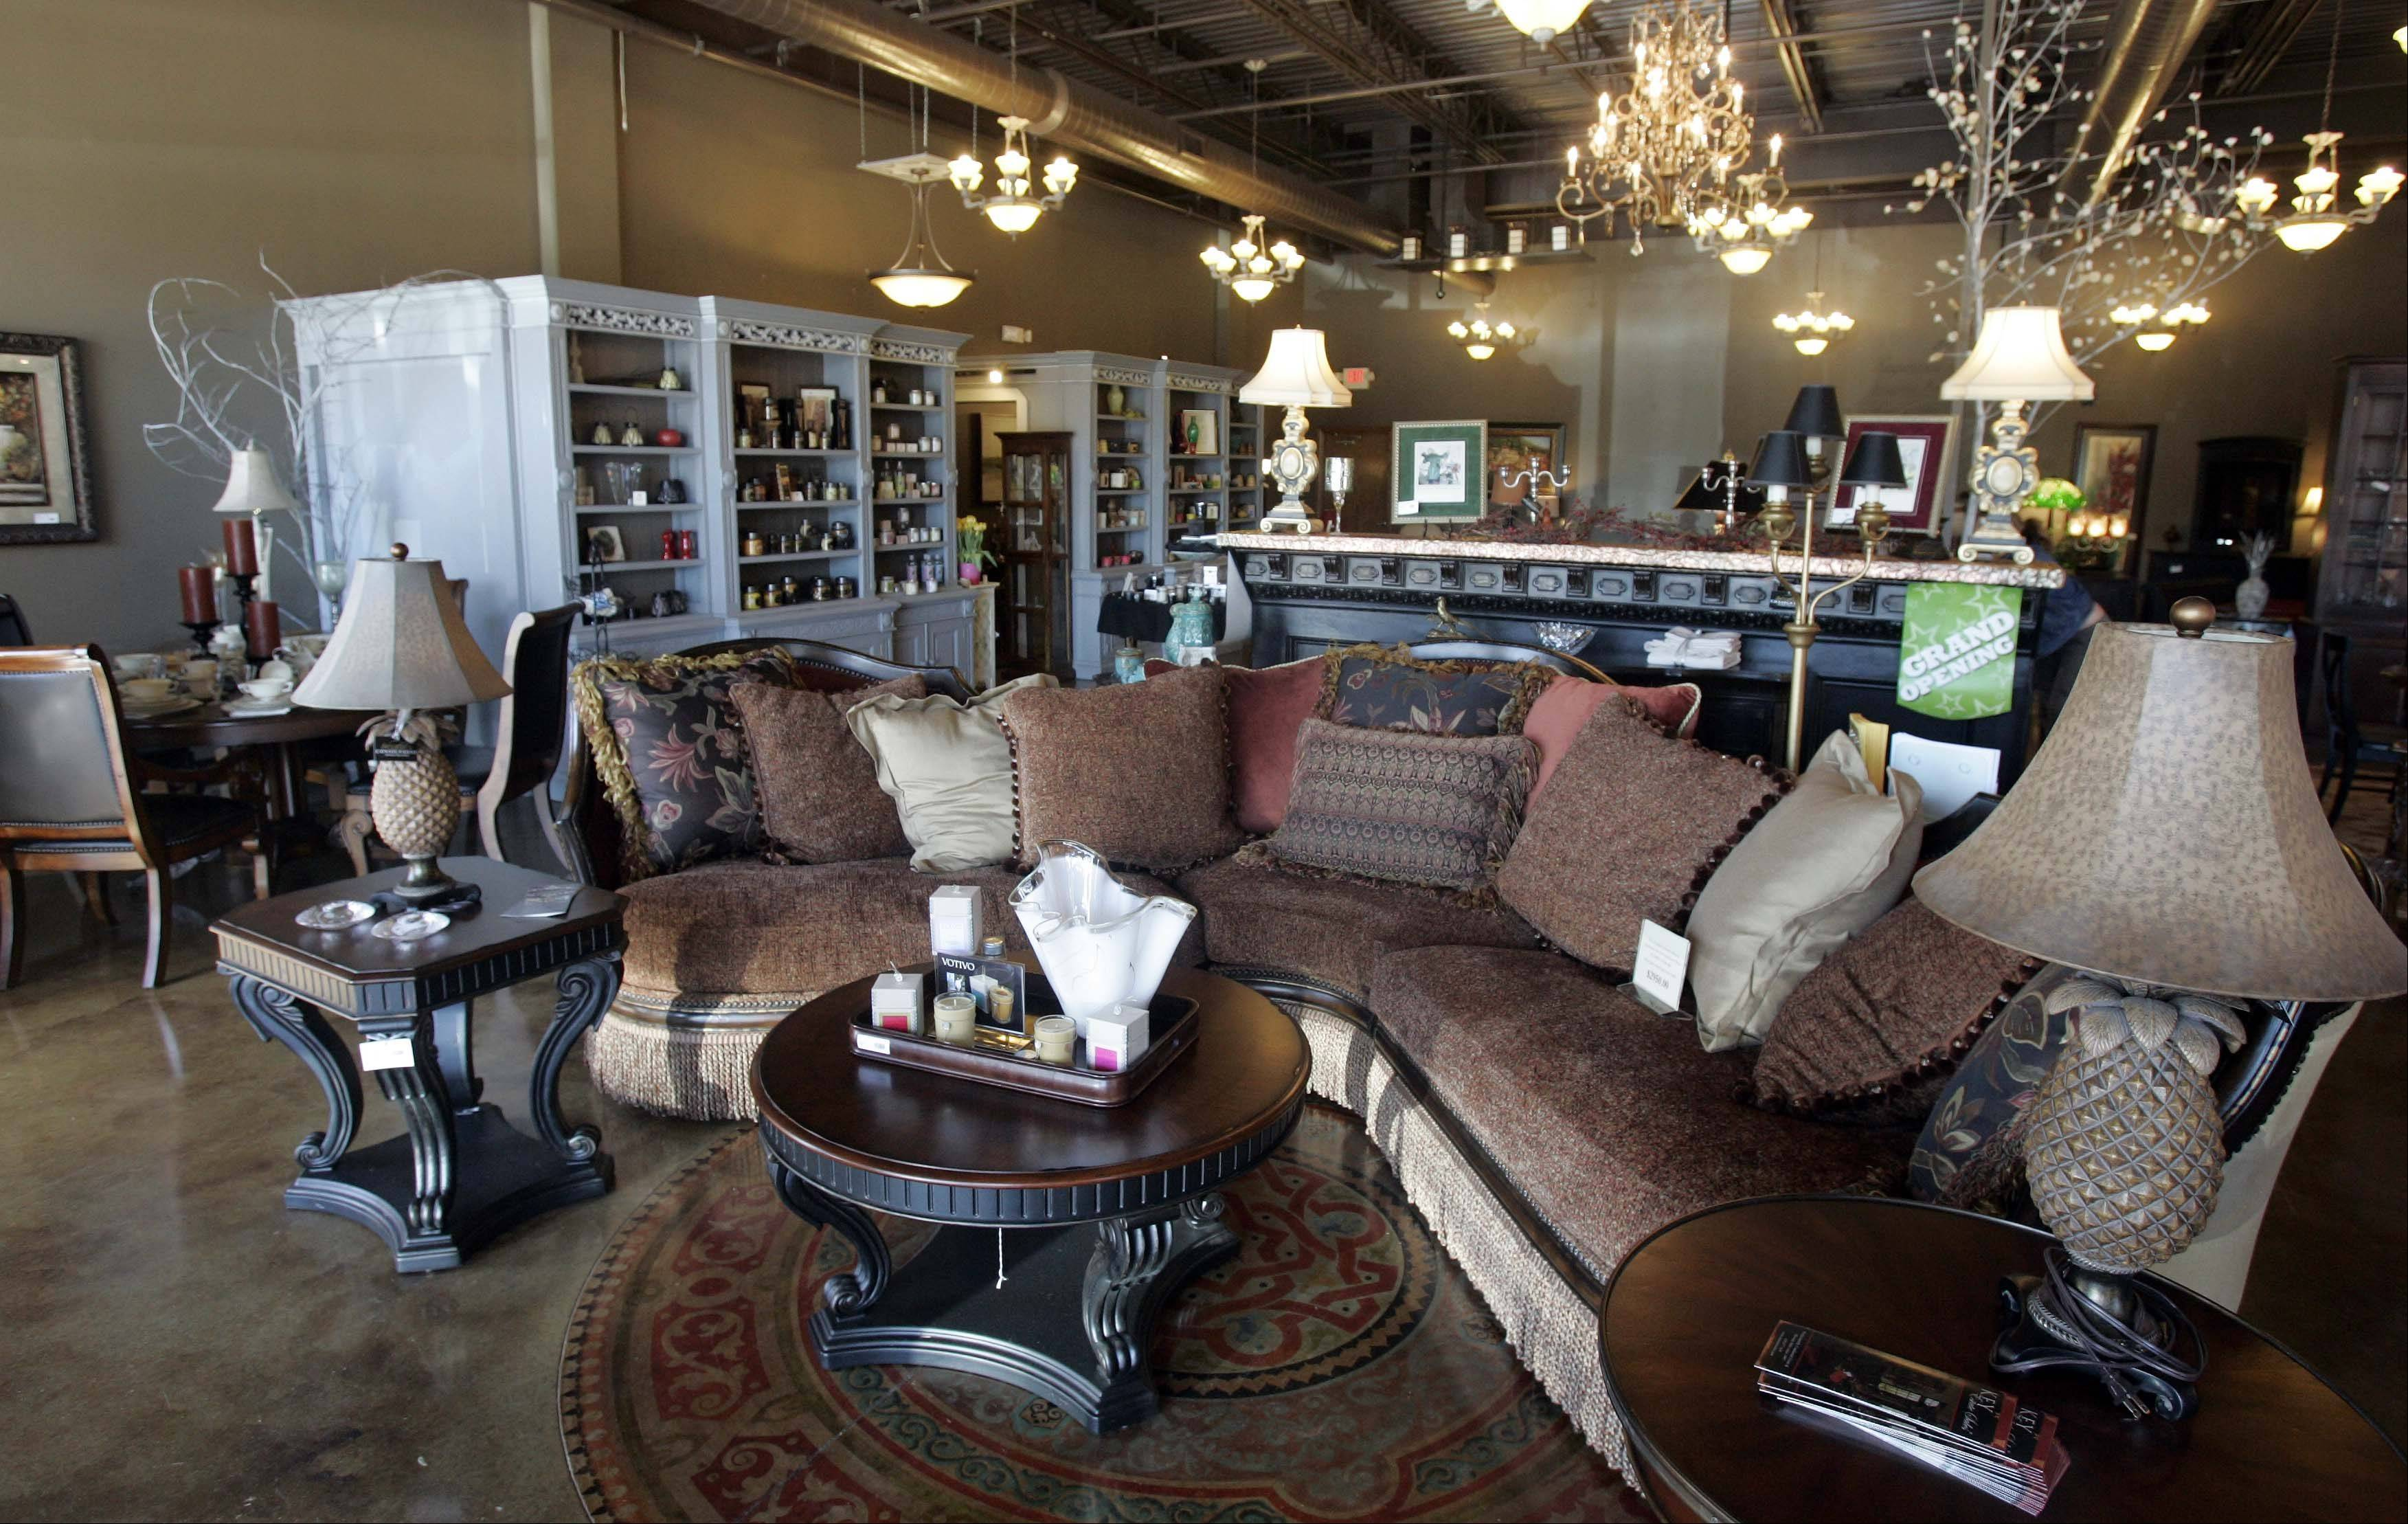 Acosta's Consignment recently opened at 1920 W. Main in St. Charles.